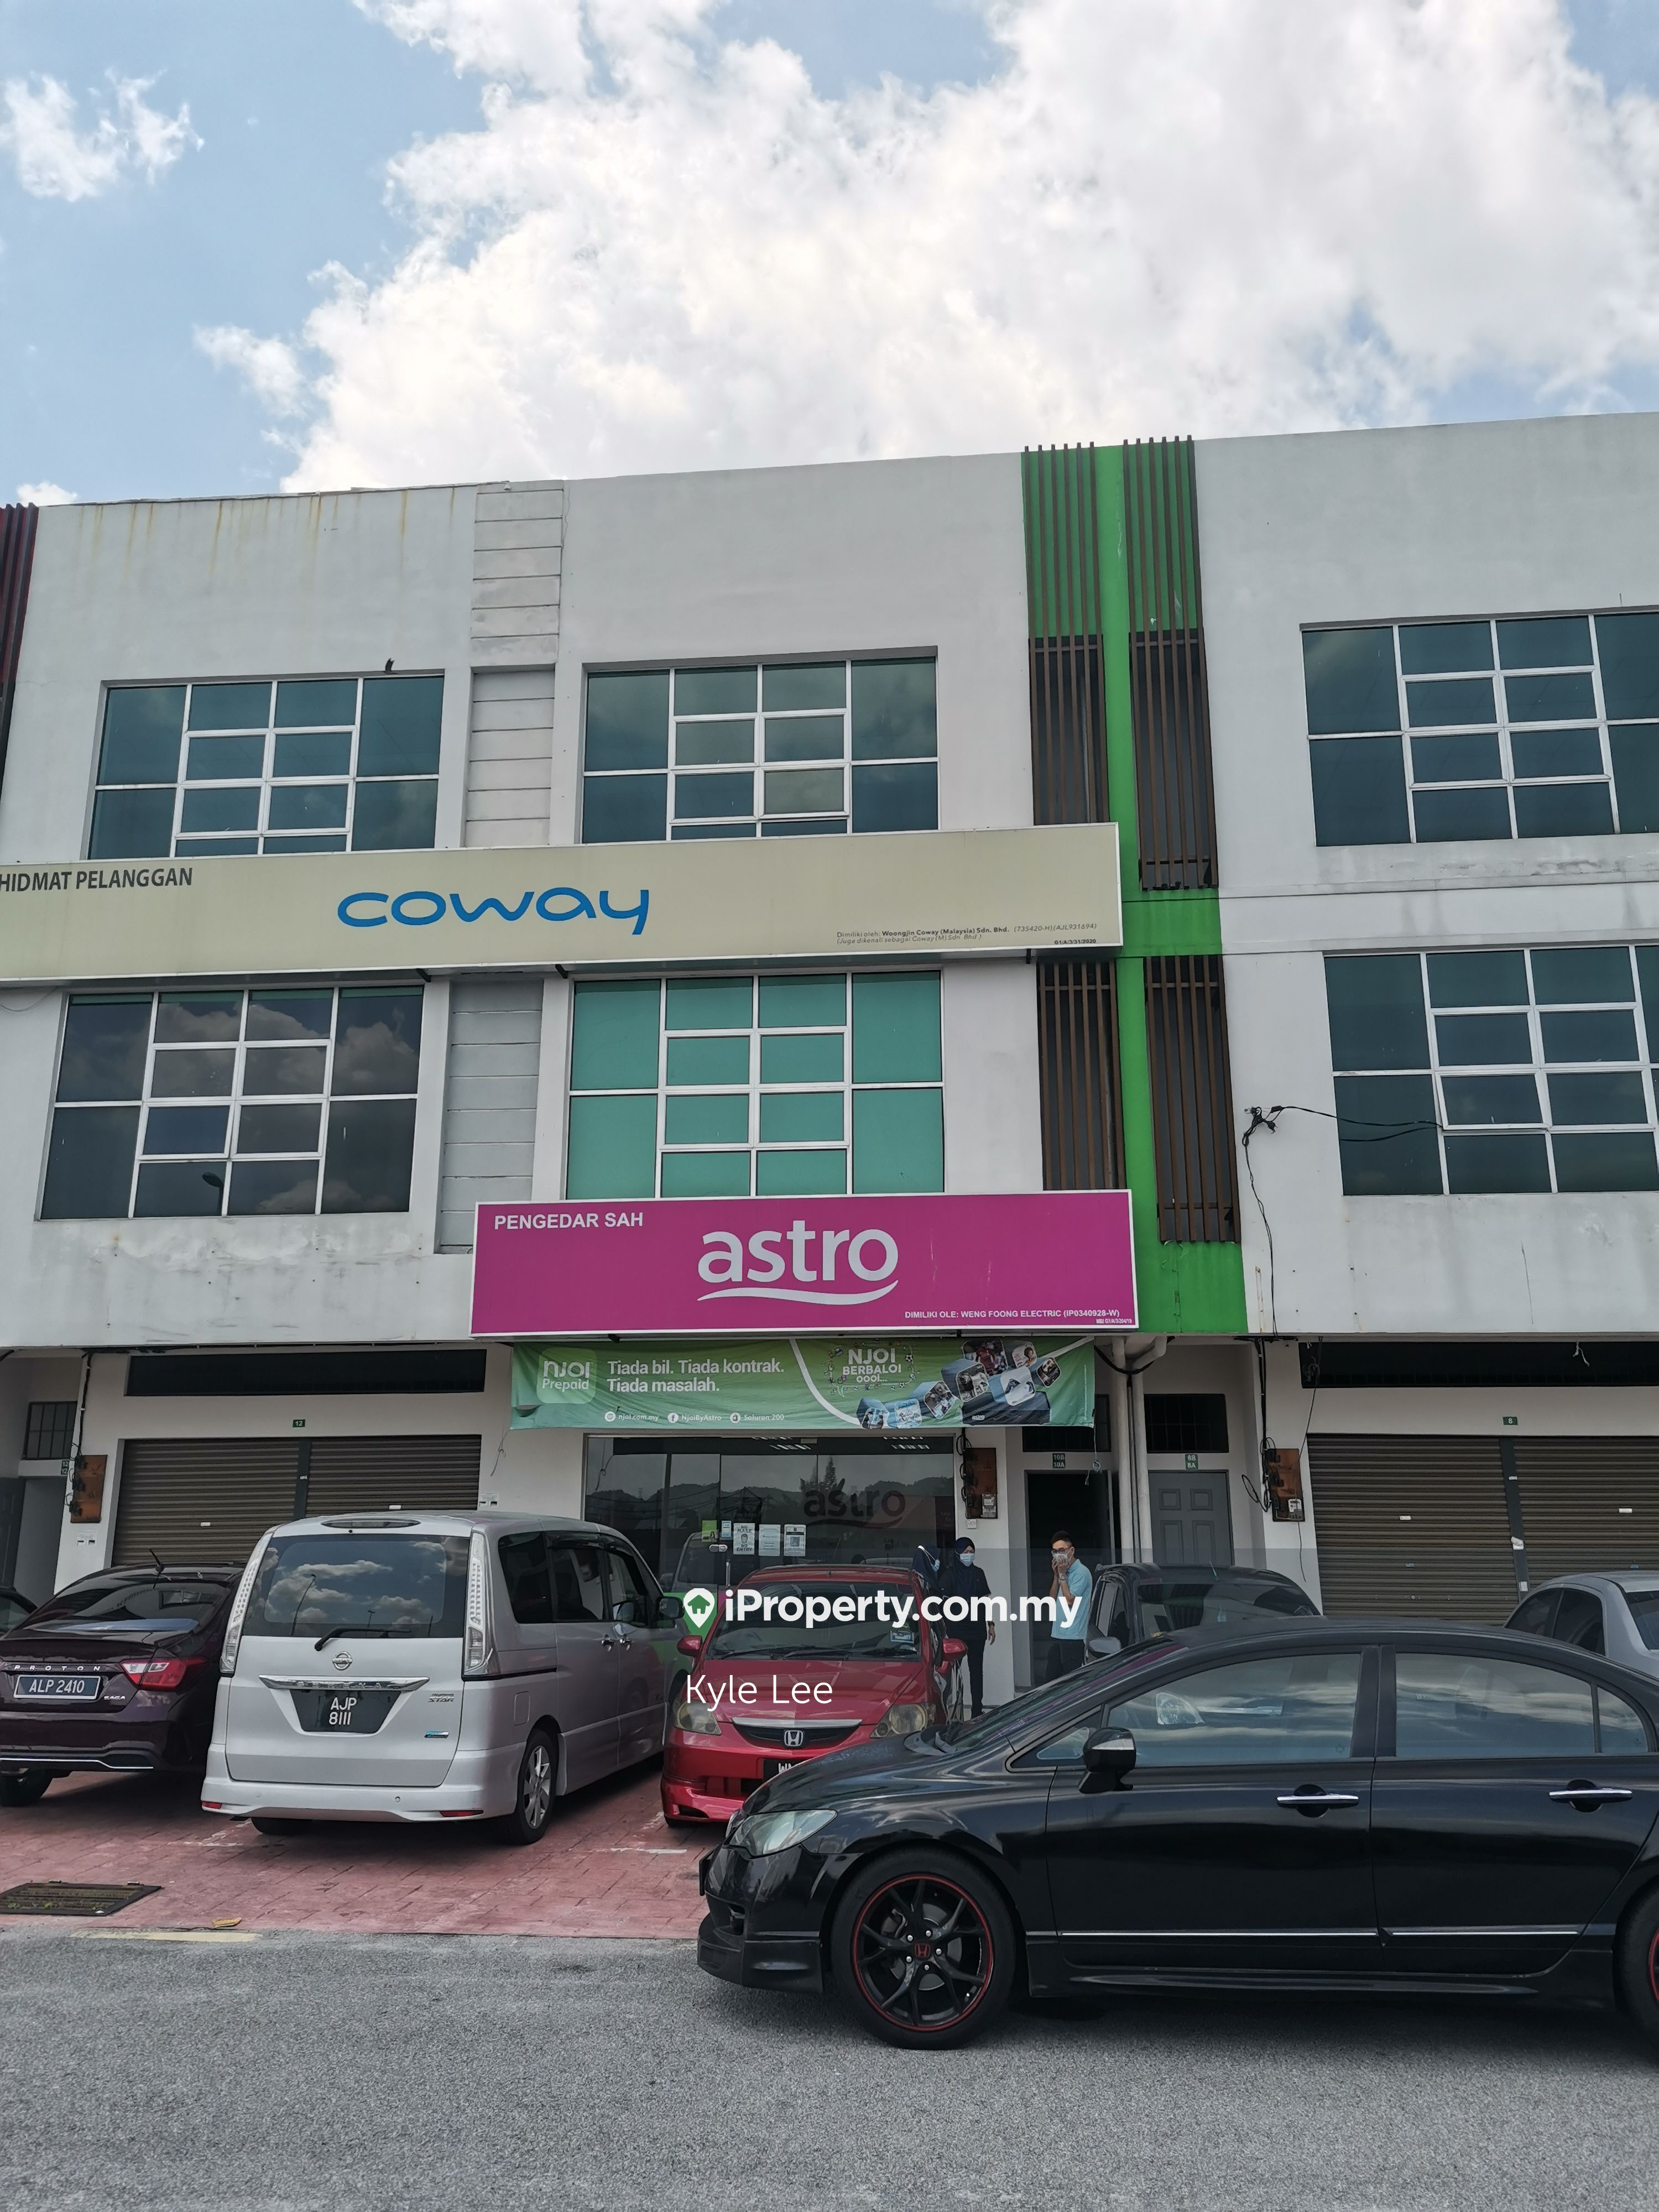 Jelapang TRIPLE STOREY SHOP ~FREE LEGAL FEE AND STAMP DUTY ~BOOKING ONLY RM3000, Jelapang, Ipoh